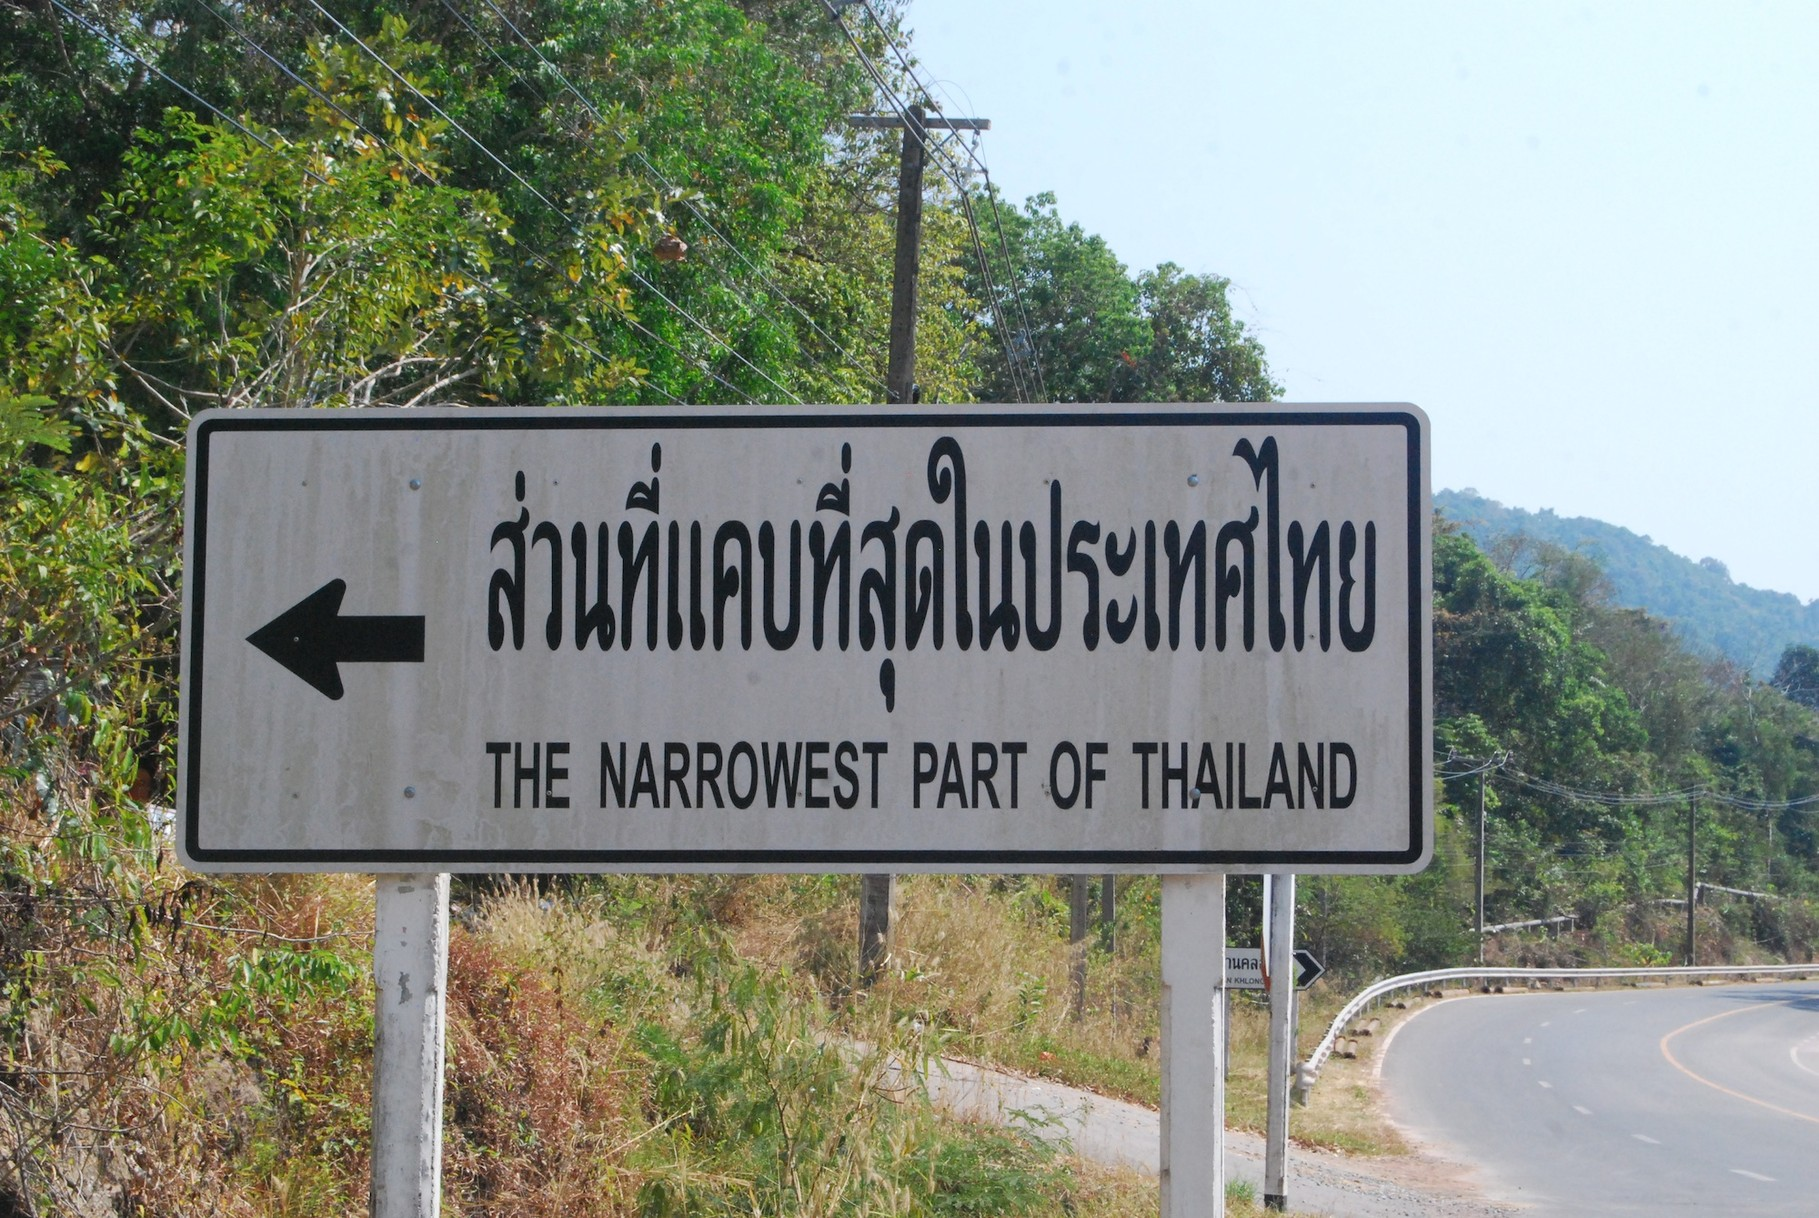 Am engsten Teil Thailands